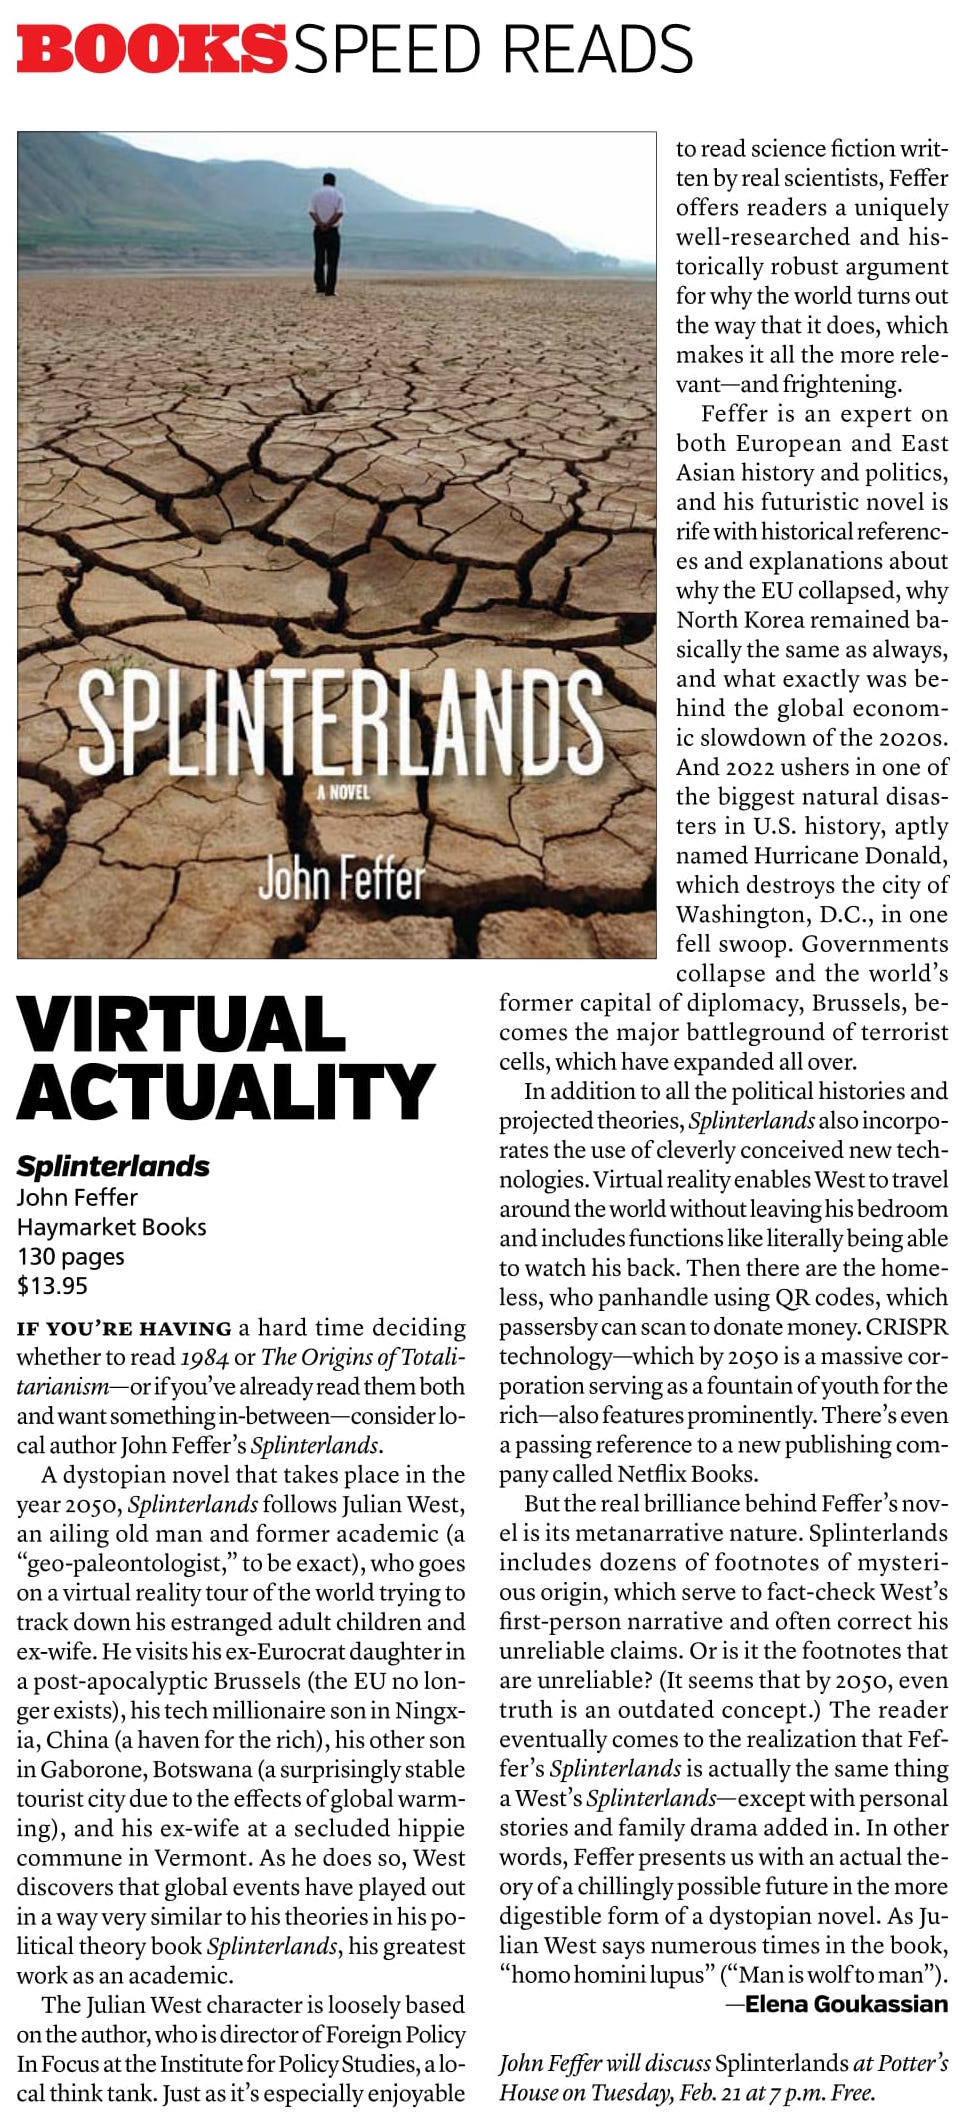 https://www.washingtoncitypaper.com/arts/books/blog/20852681/john-feffers-splinterlands-reviewed